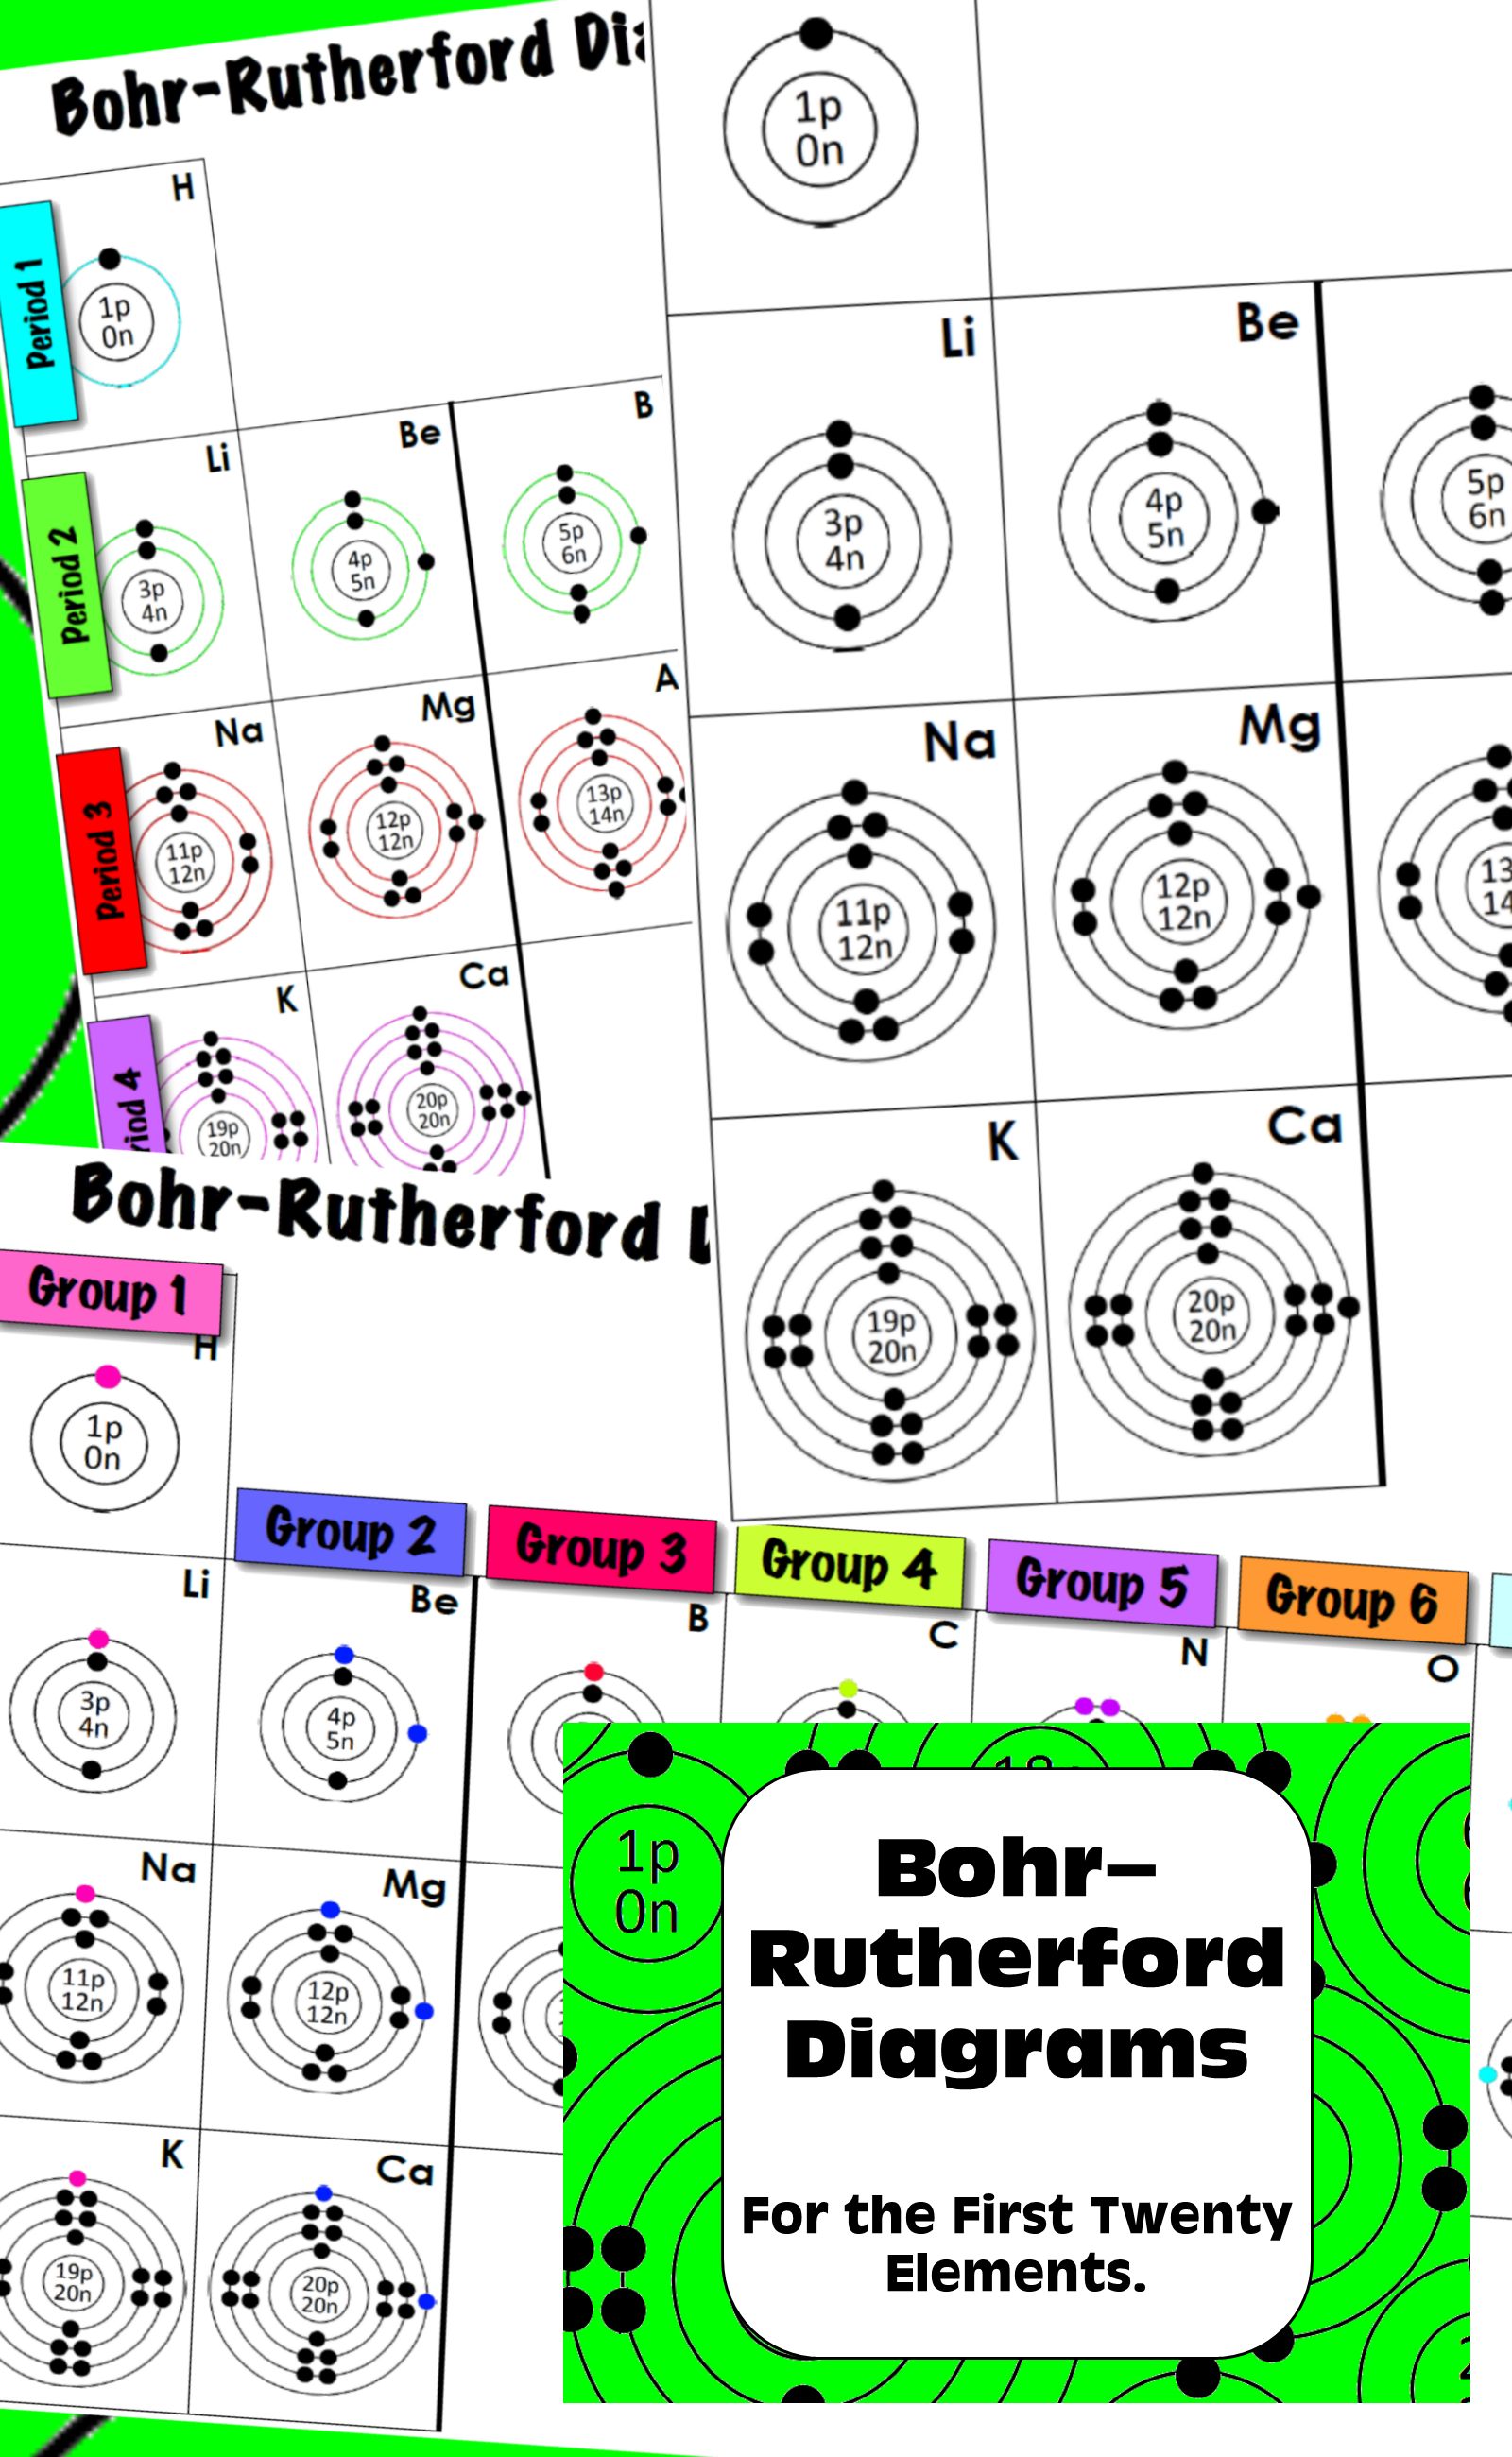 medium resolution of bohr rutherford diagrams for first twenty elements student graphical organizer color coded answers elements periodictable bohr rutherford chemistry